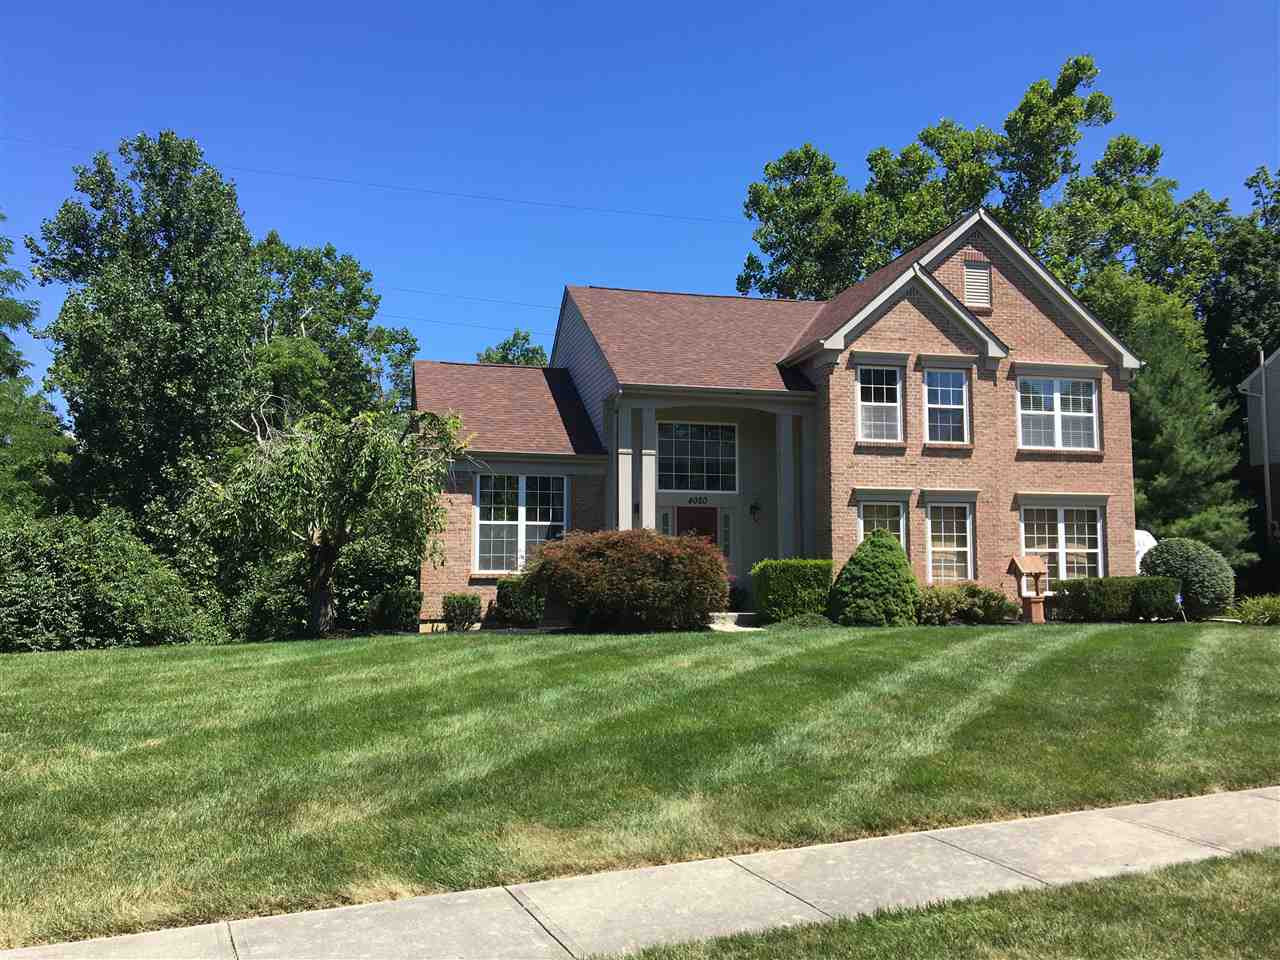 Photo 1 for 4080 Sherbourne Dr Independence, KY 41051